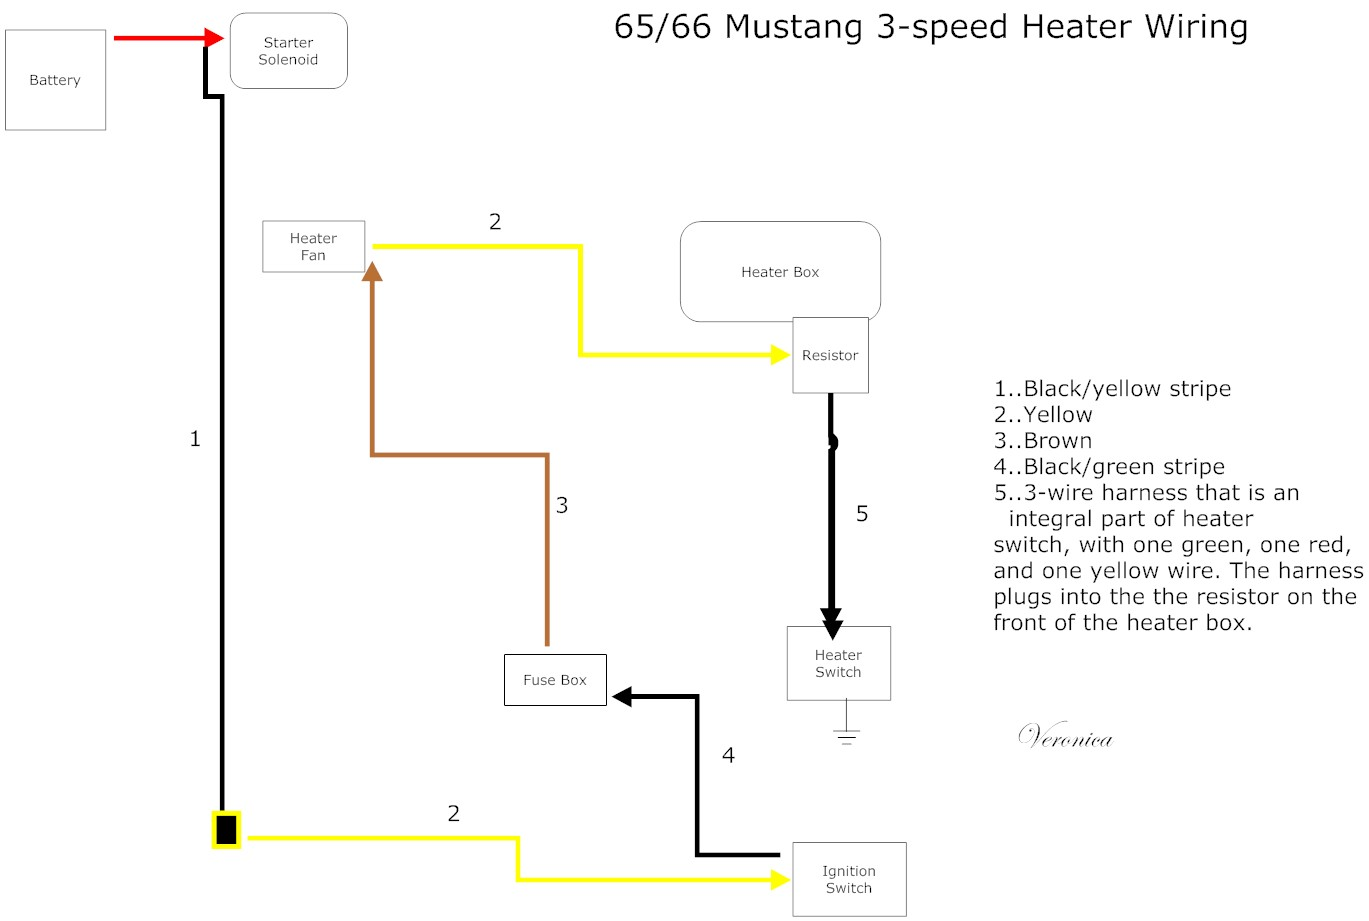 Heating Fan Wiring Diagram | Wiring Diagram on